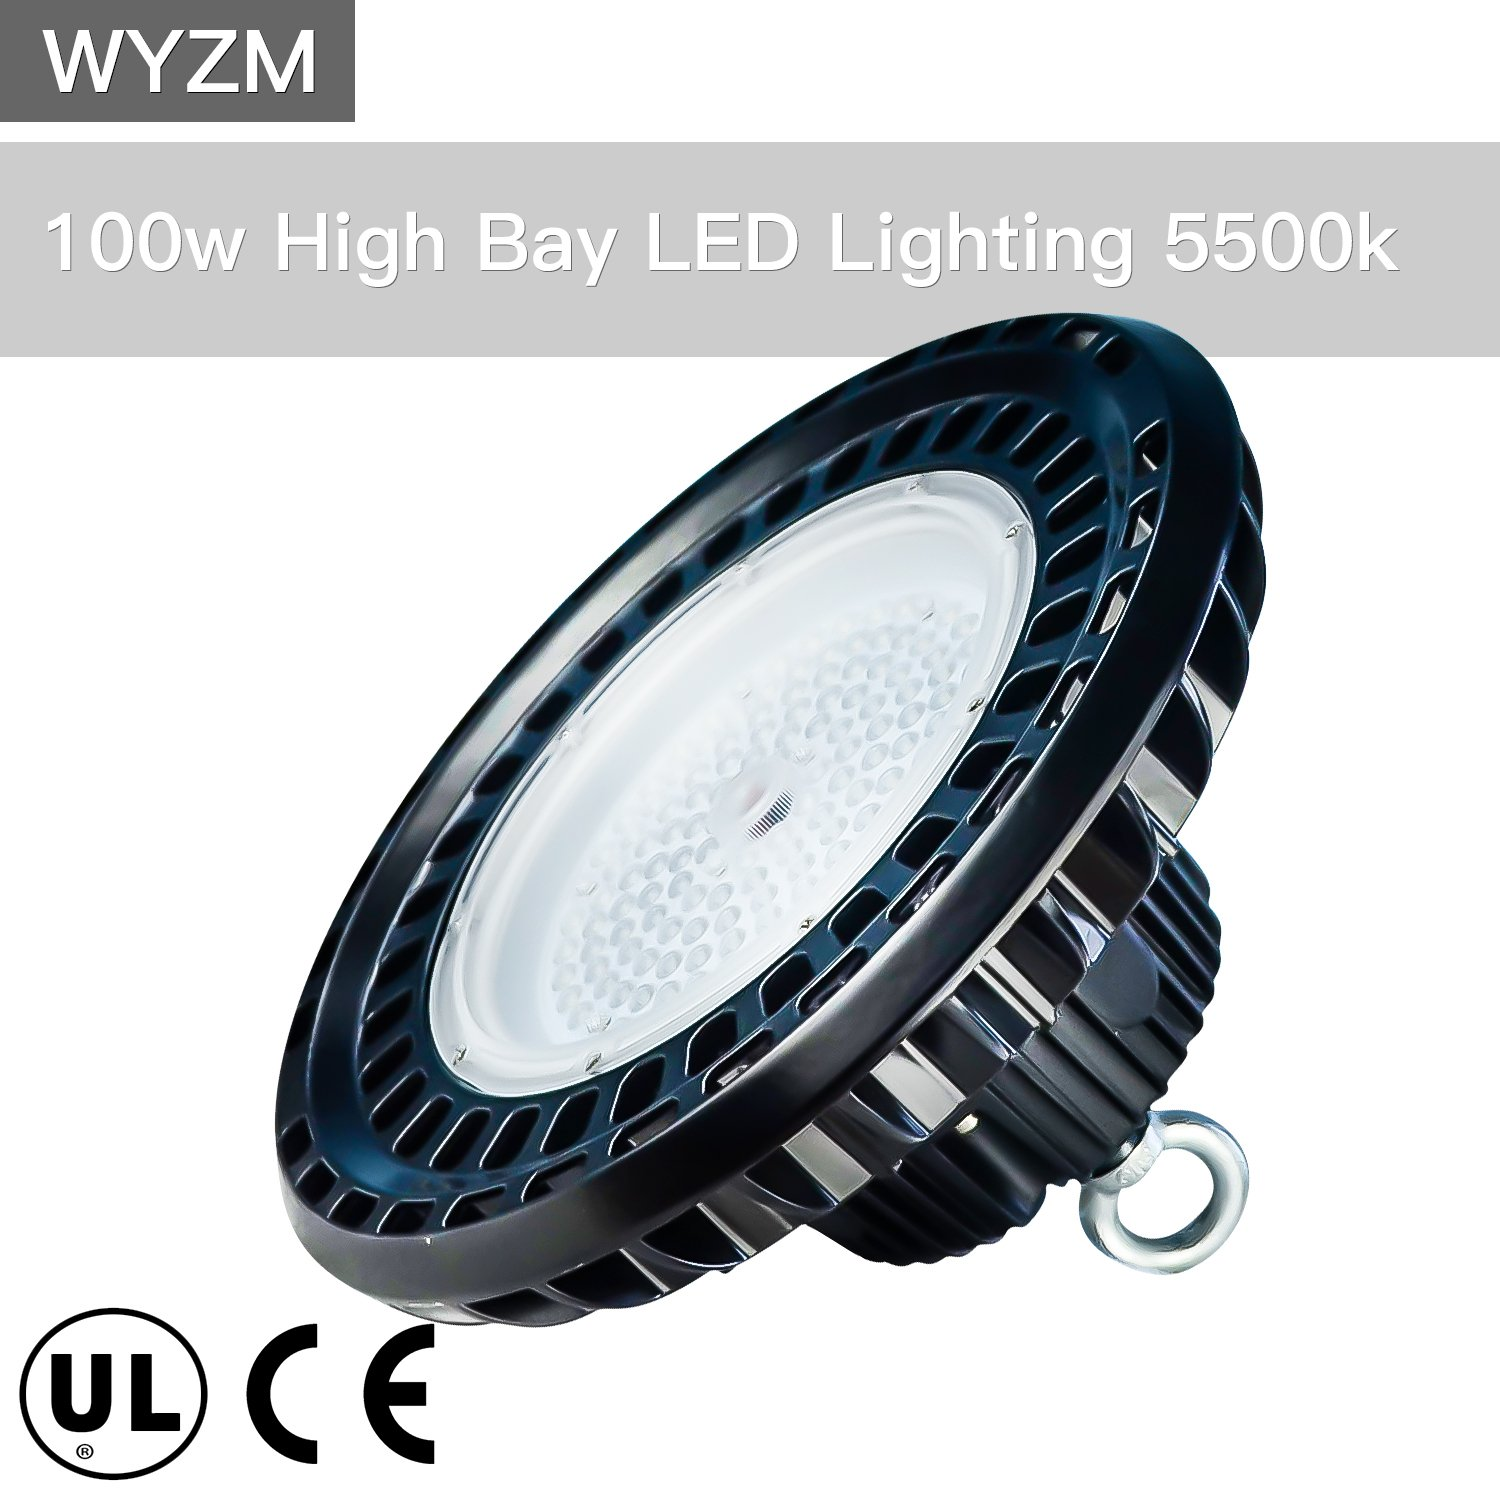 100W High Bay LED Lighting,Works From 110V to 277V,300W-350W HPS or MH Bulbs Equivalent,Great LED High Bay Lights for Garage Commercial Shopping Mall